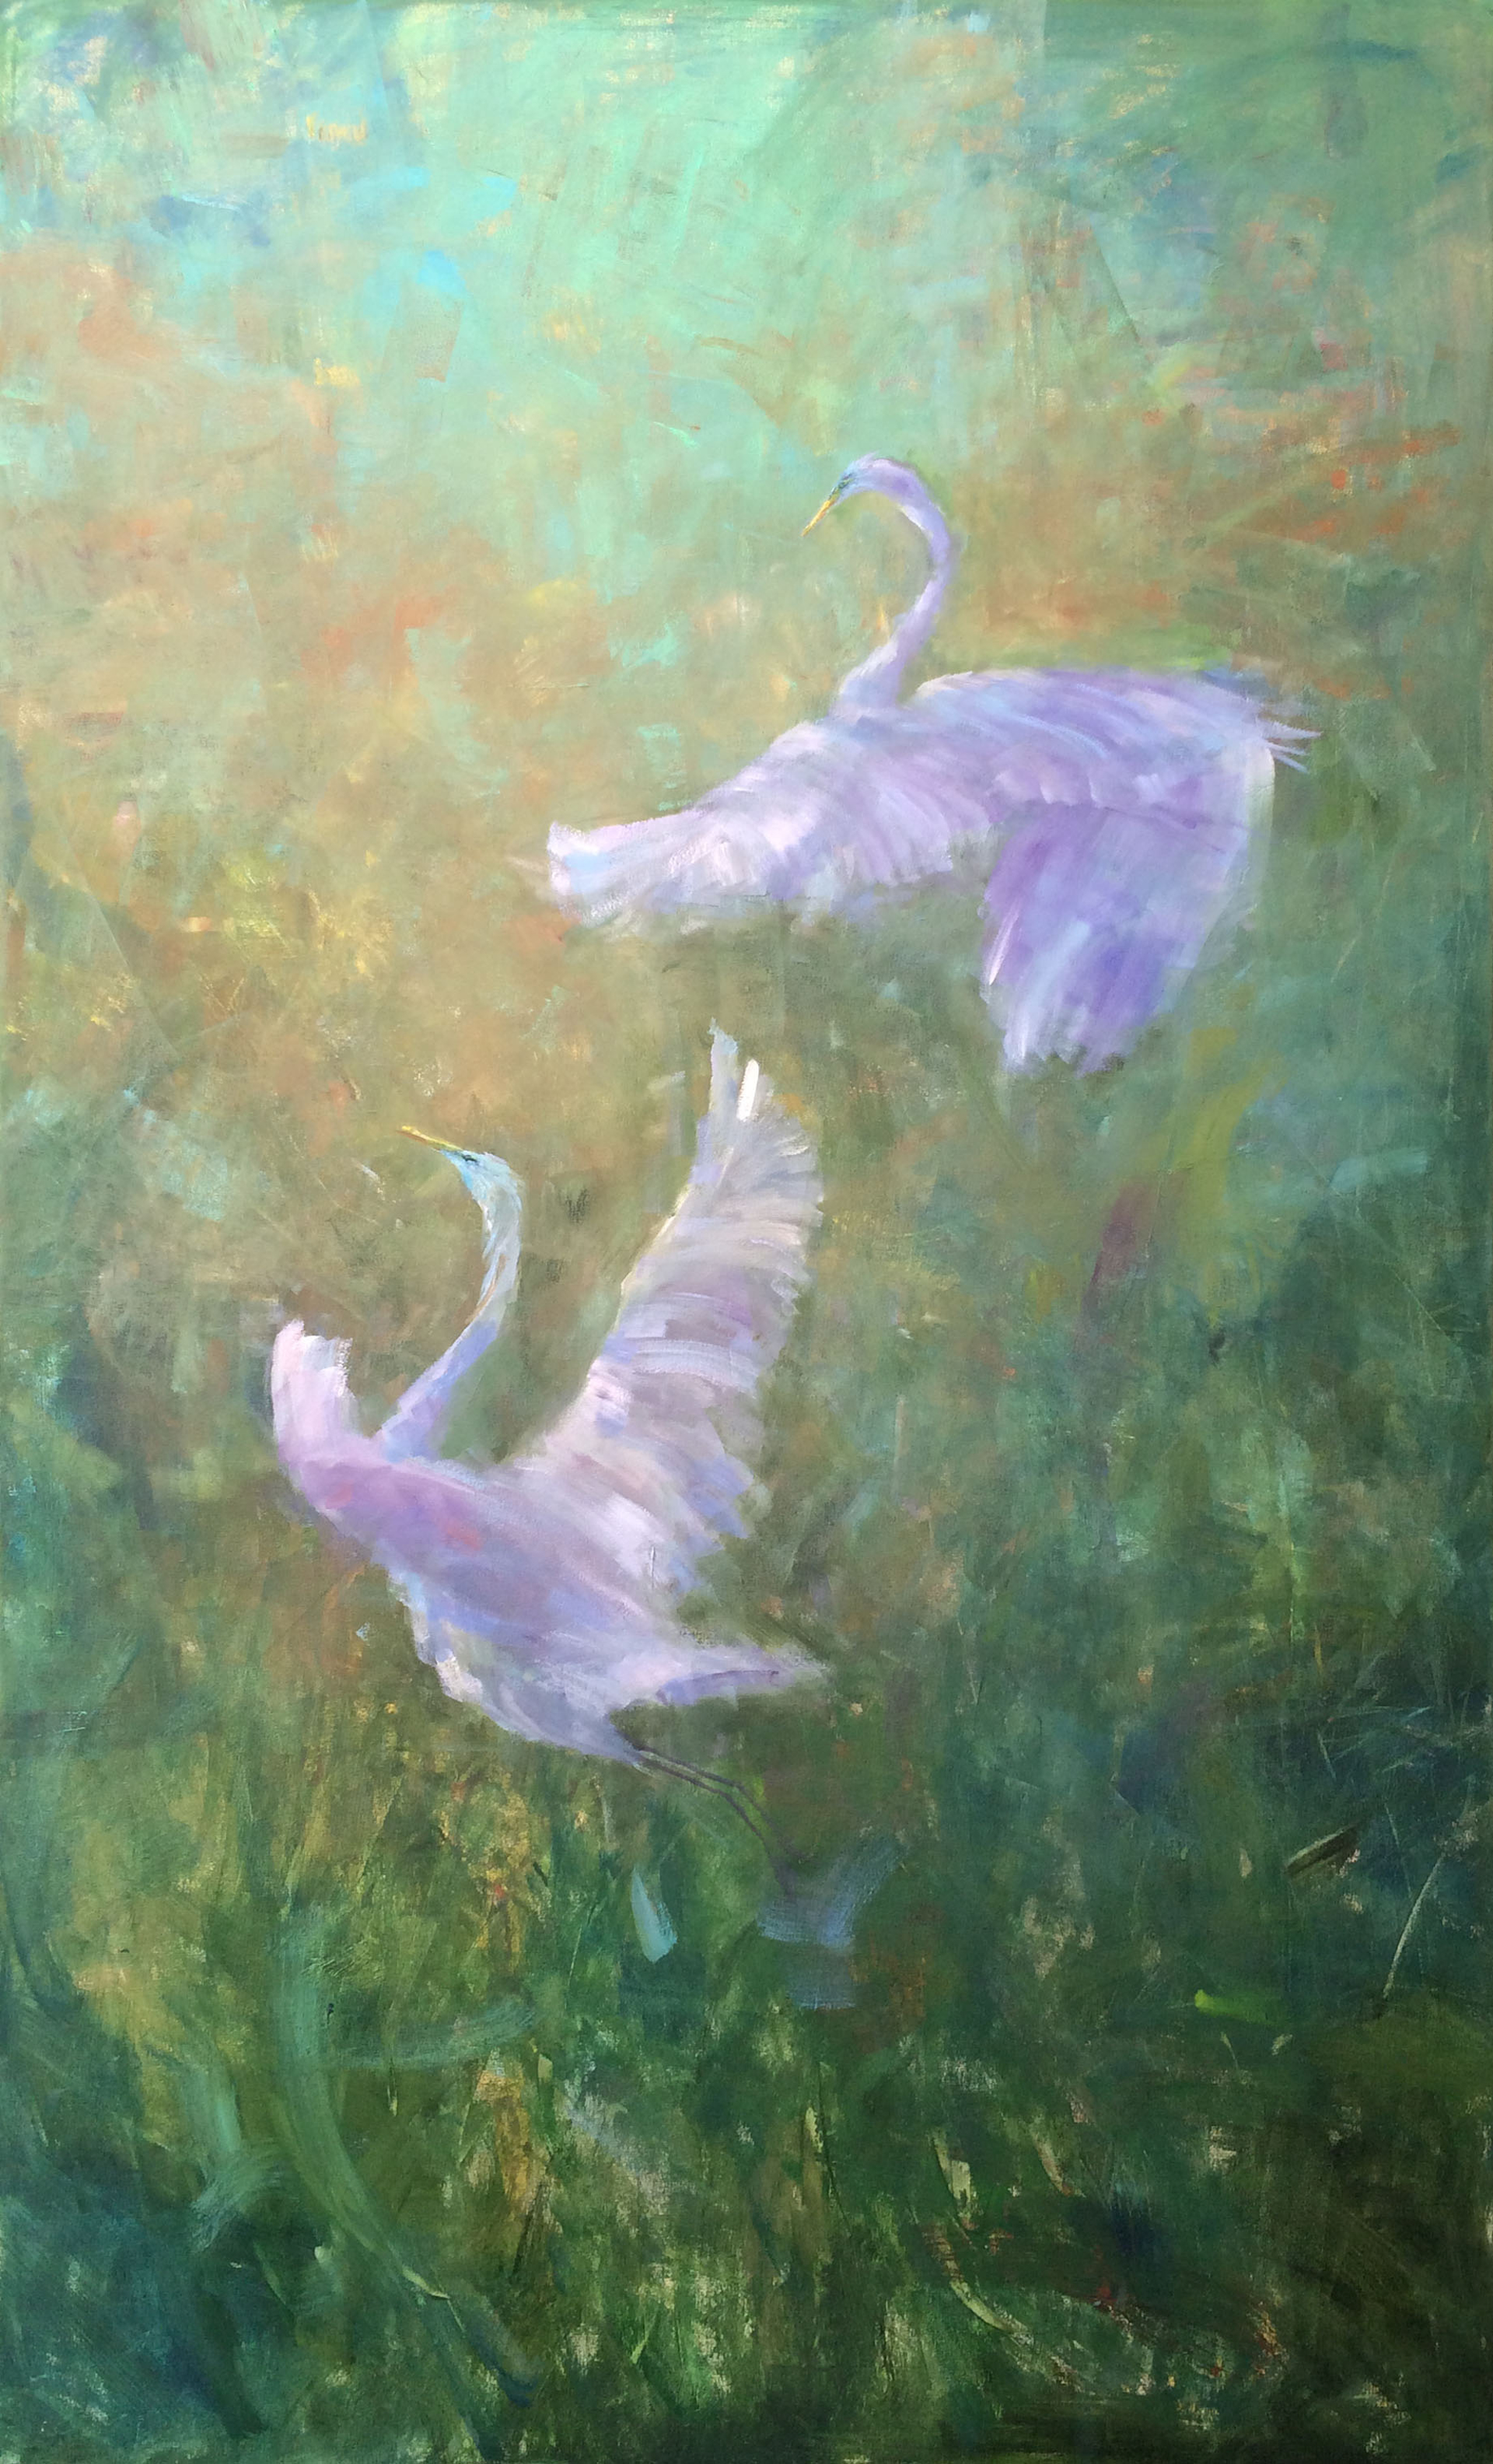 Ascent of the Great Egret II by Karen Hewitt Hagan